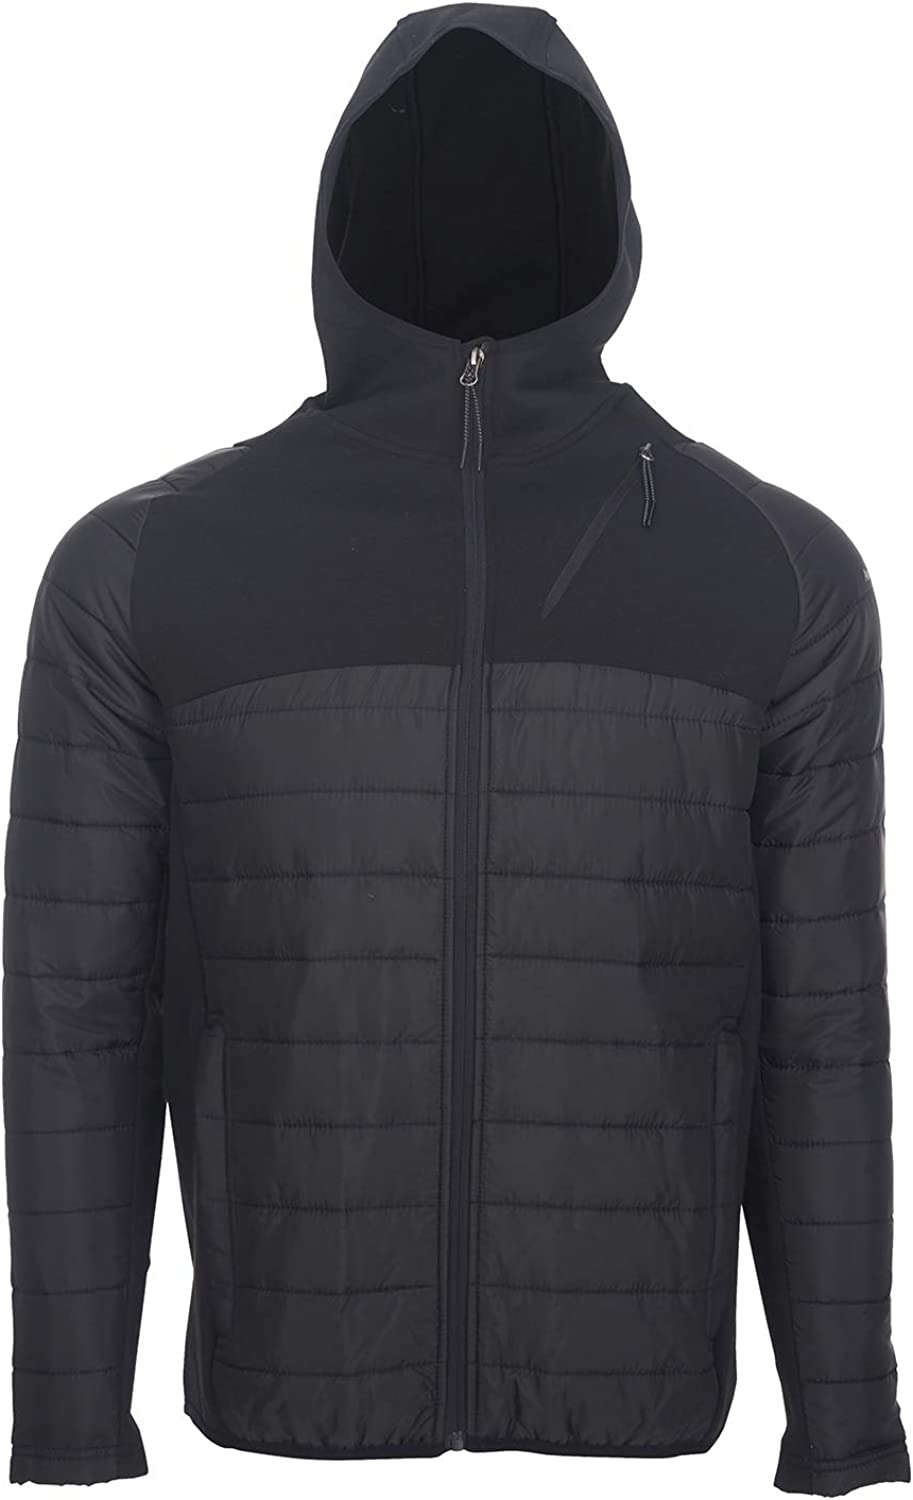 Avalanche Men's Midweight Combo Woven Knit Jacket Hoodie With Zipper Pockets